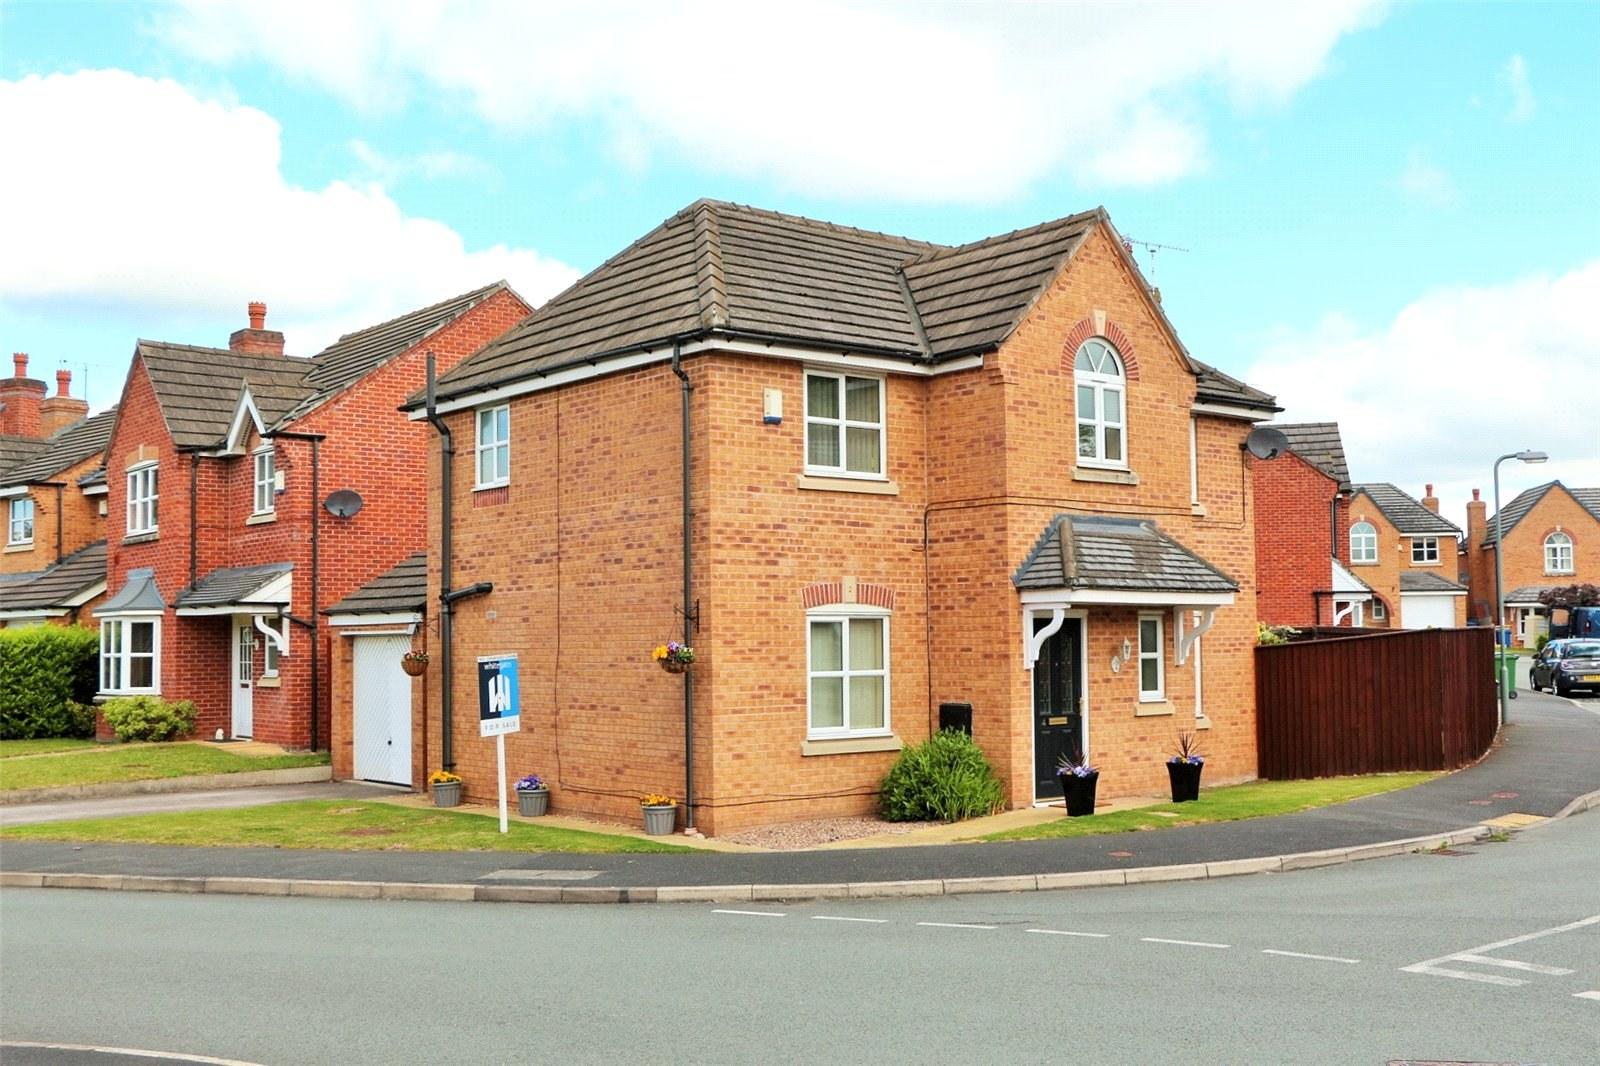 Properties for sale in Wrexham: Five of the best on the market now